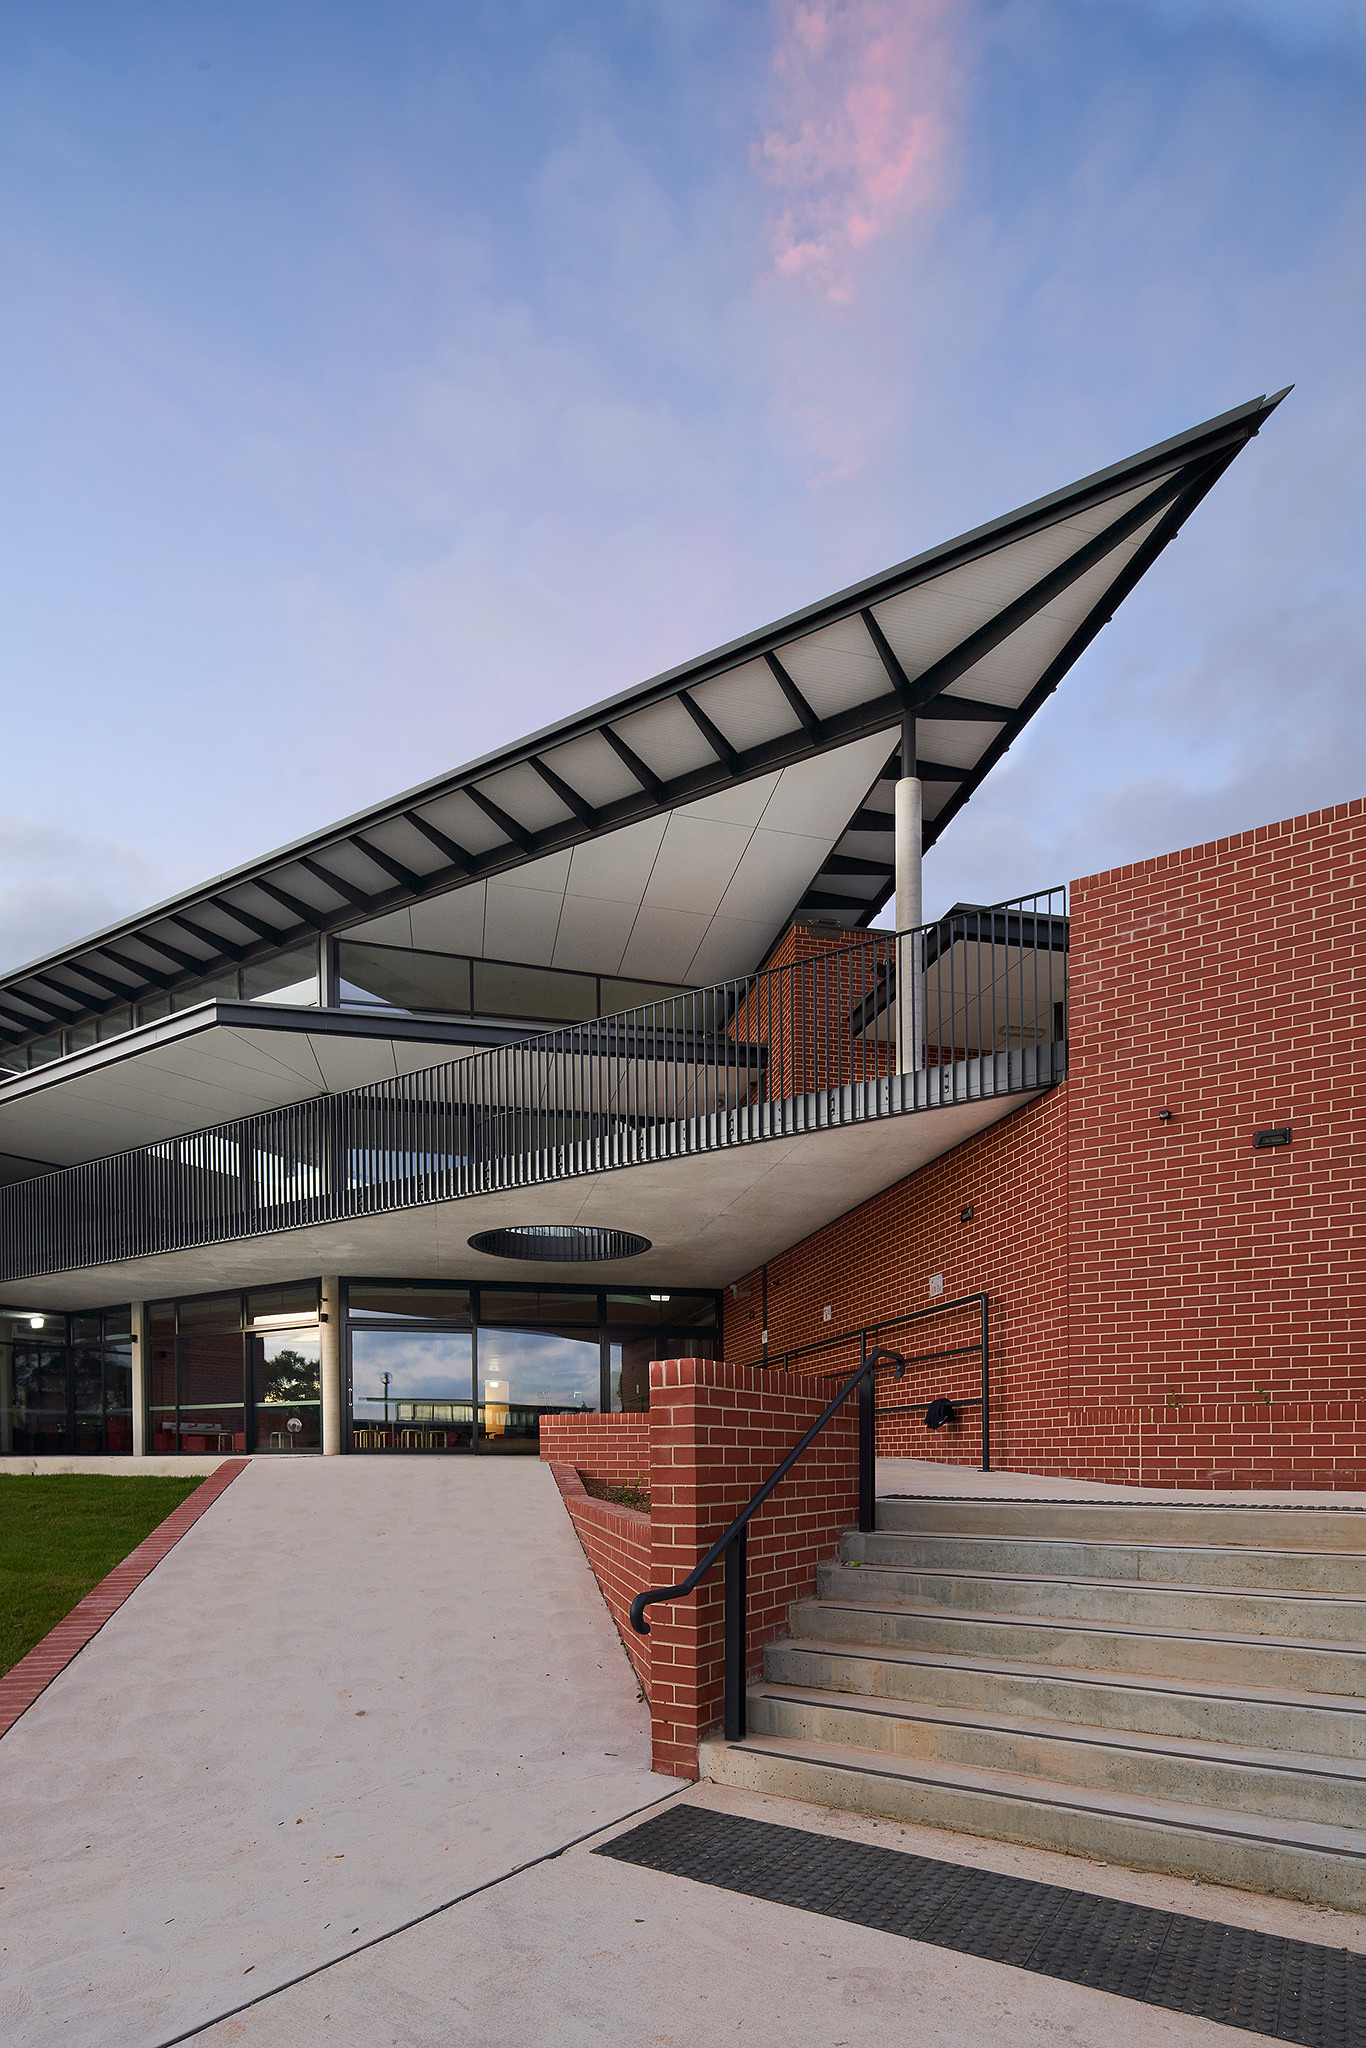 Two point perspective photograph of an architect designed building with dramatically angled roof